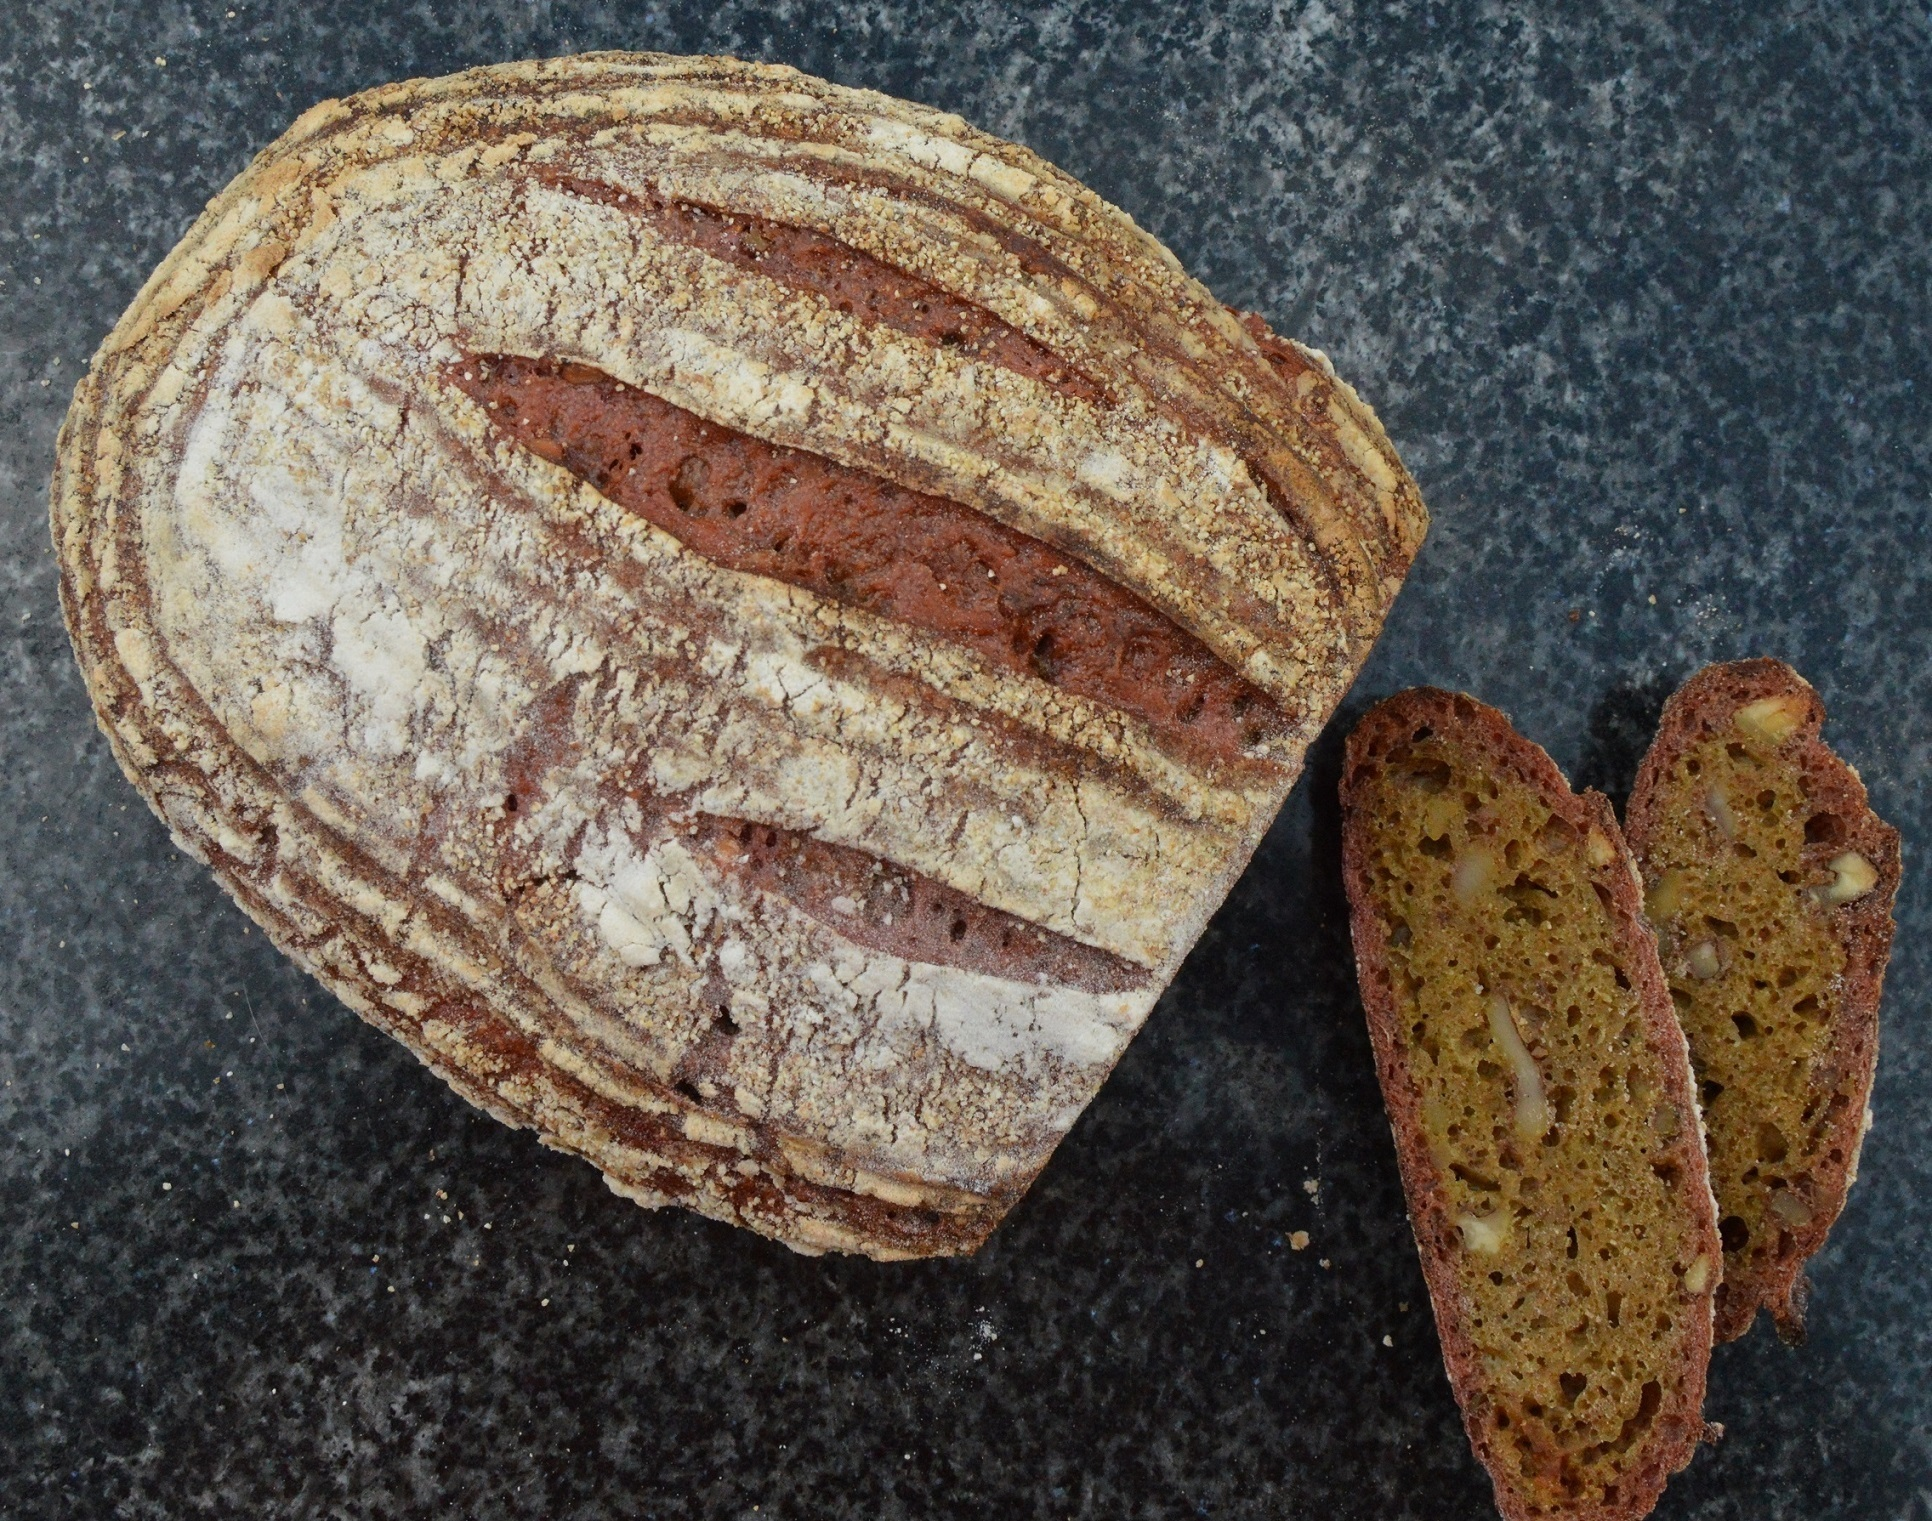 Beetroot & toasted walnut sourdough